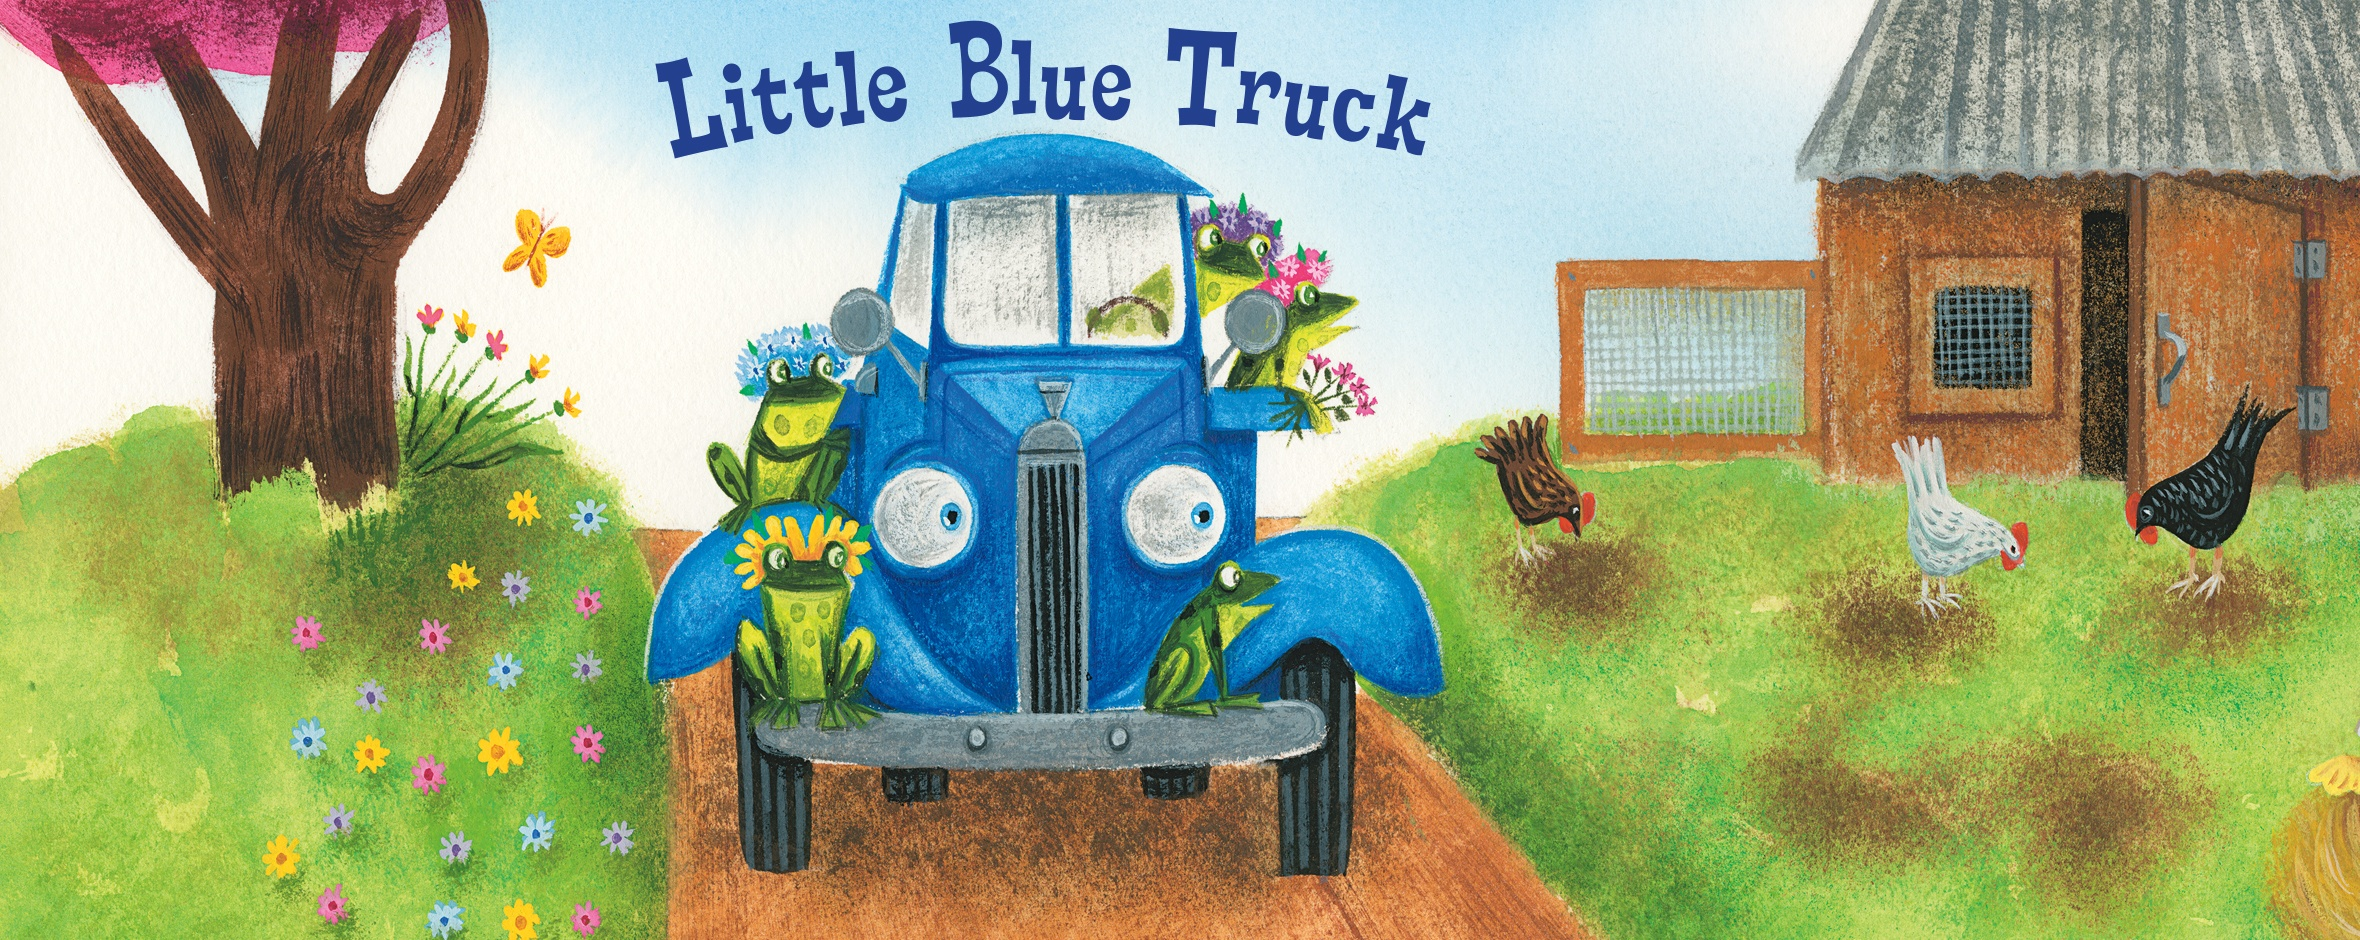 Little Blue Truck | Hmh Books - Little Blue Truck Free Printables